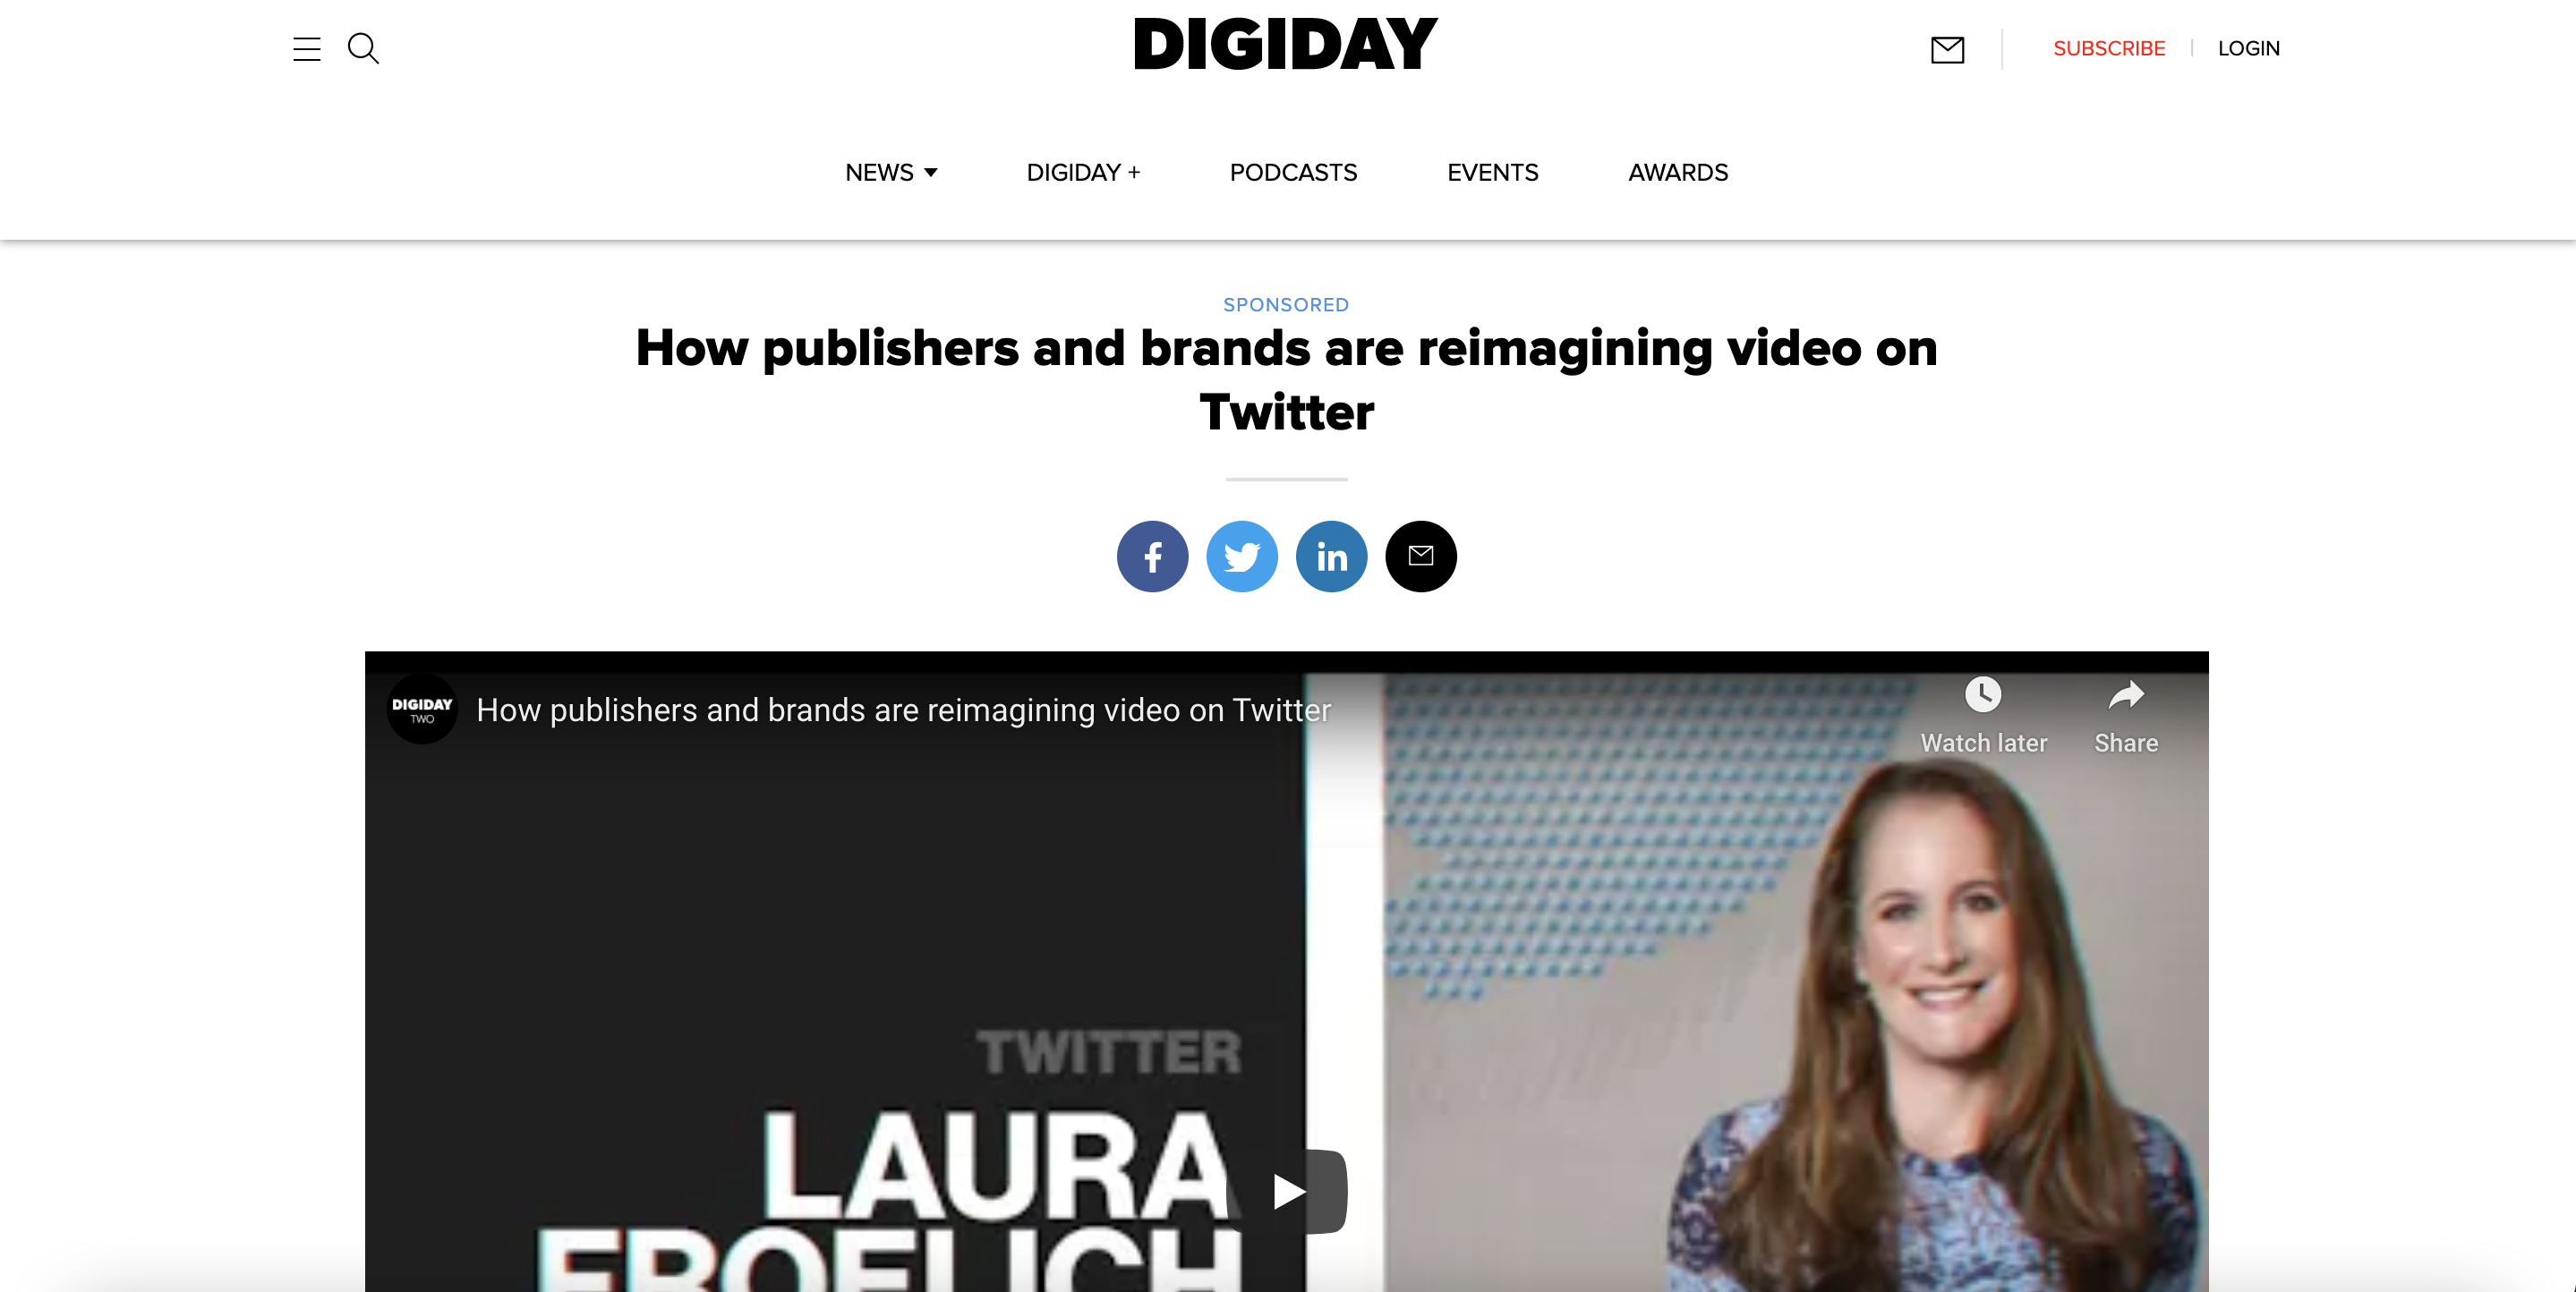 Branded content by Twitter on Digiday